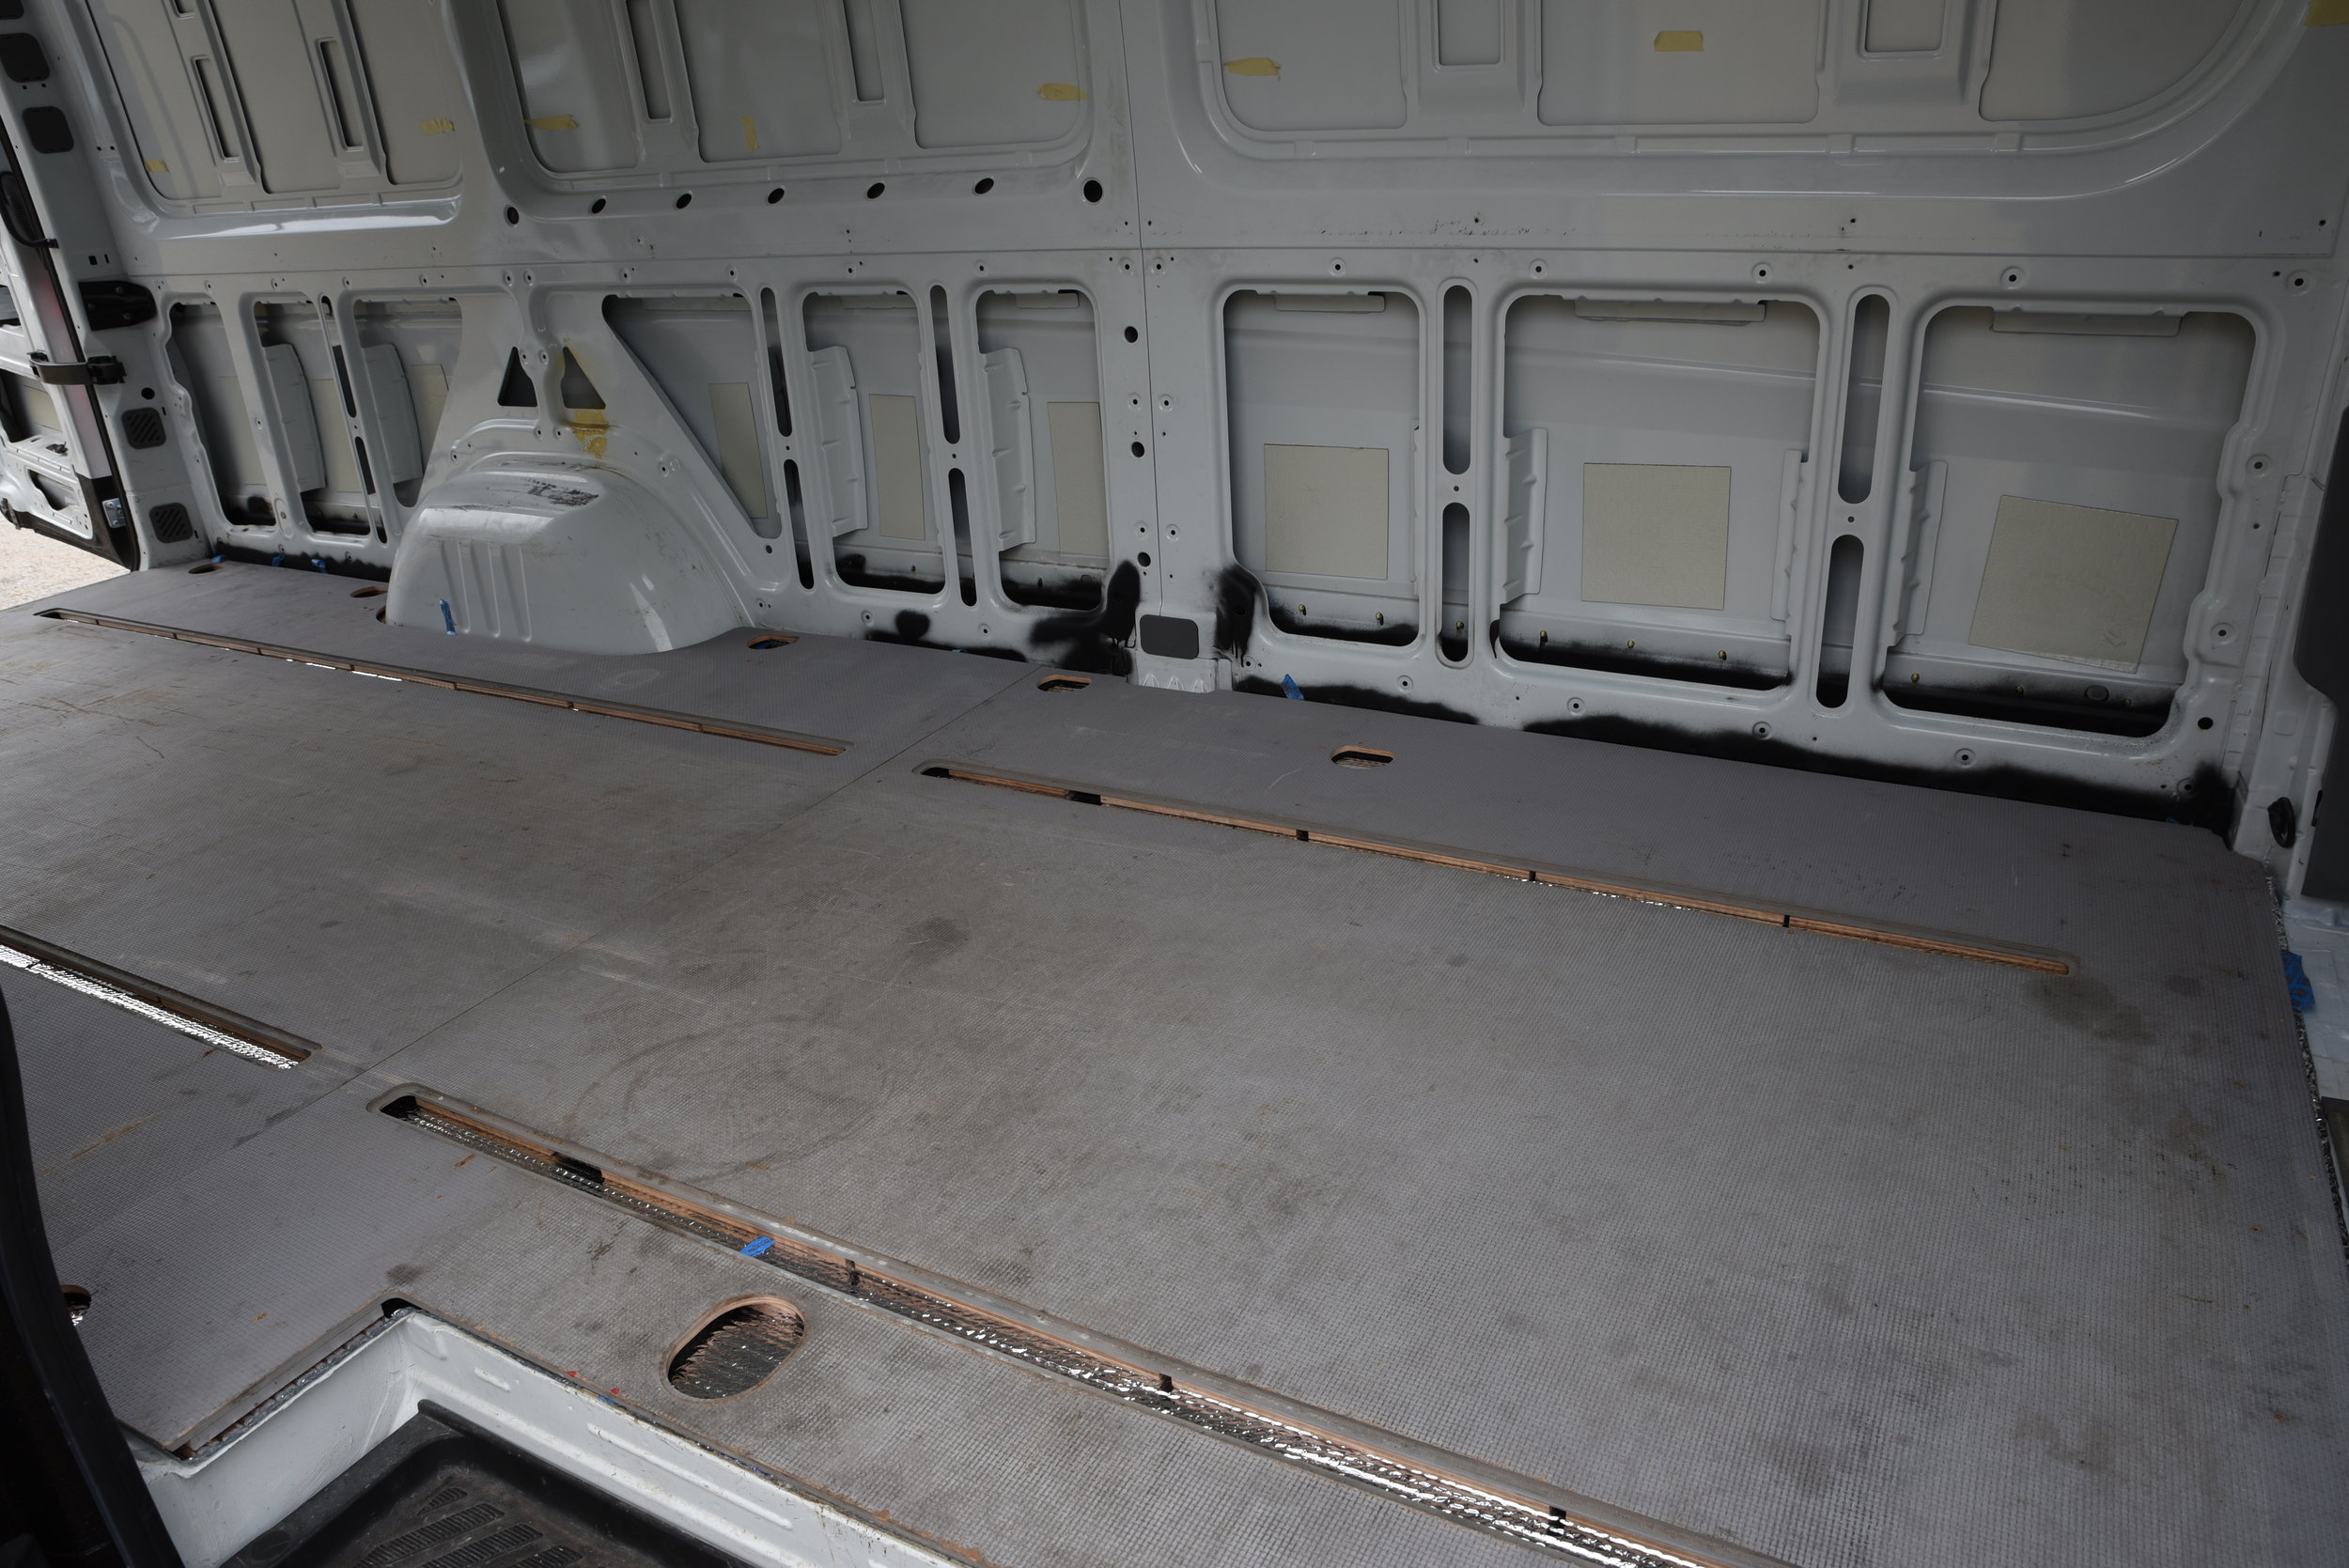 The subfloor of our van that came with it when we purchased it.